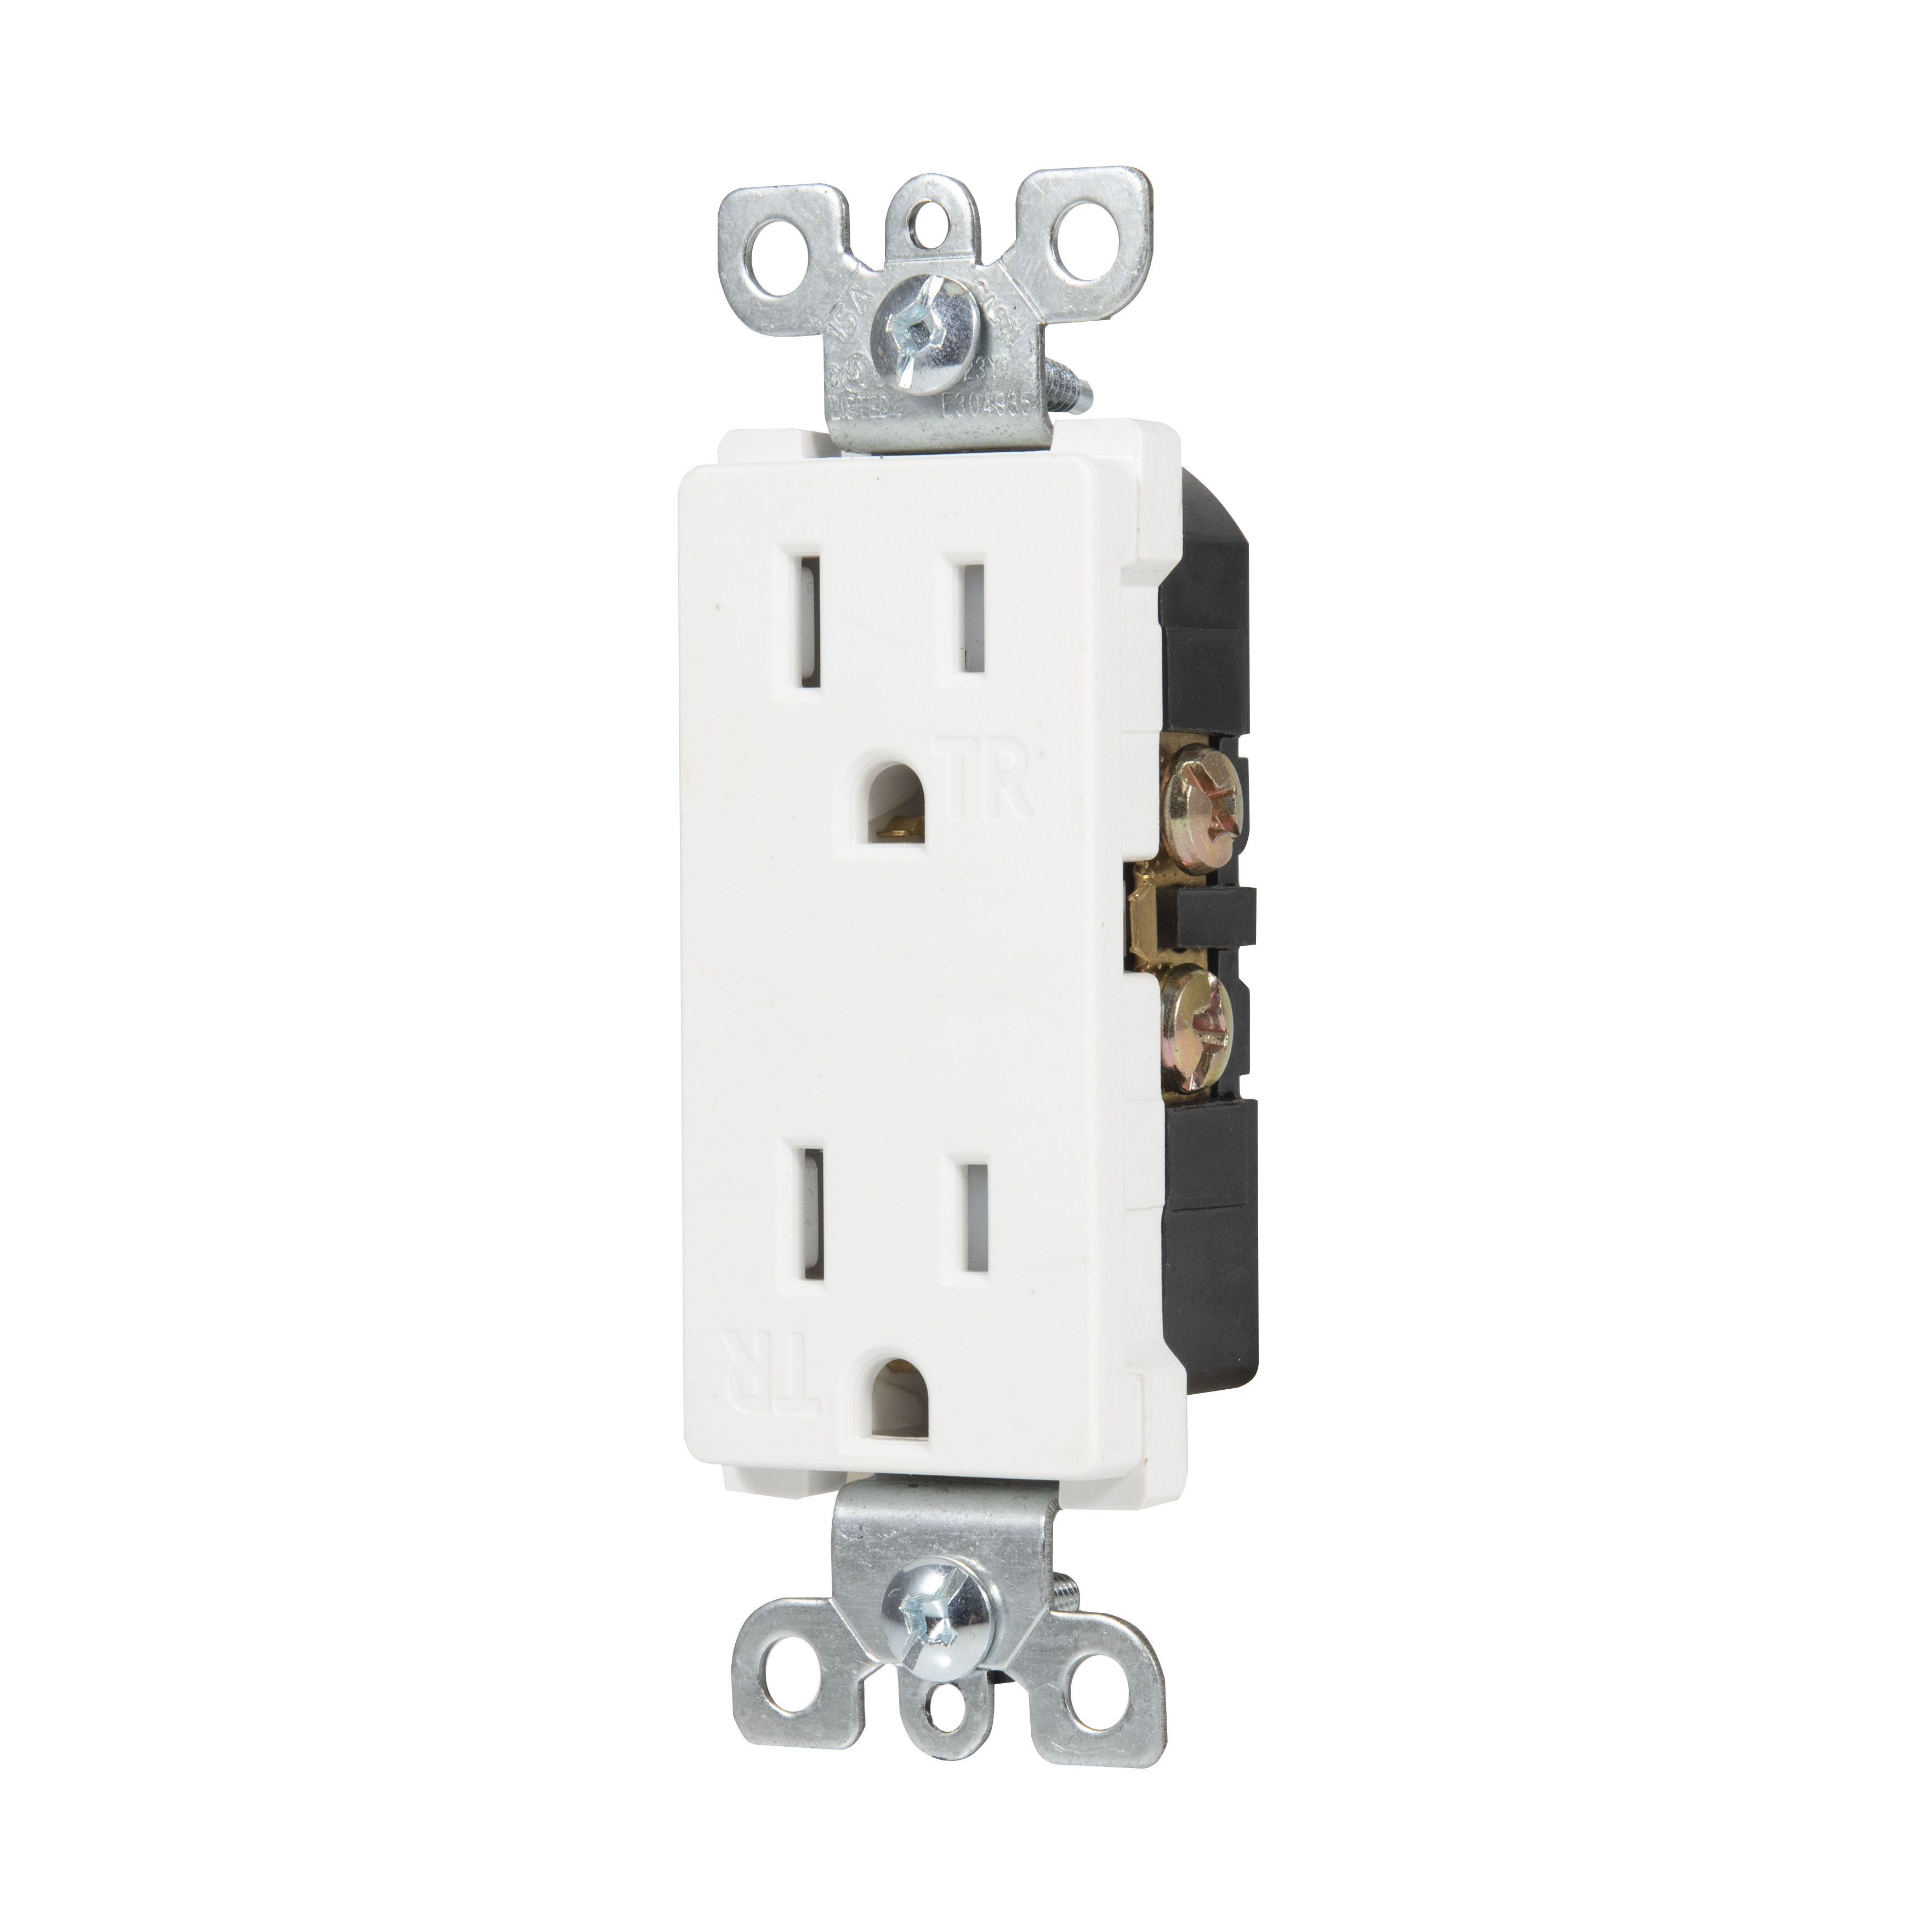 Lumex Ons Standaard Duplex Bakje Nema 5-15R Decorateur <span class=keywords><strong>Outlet</strong></span> Socket